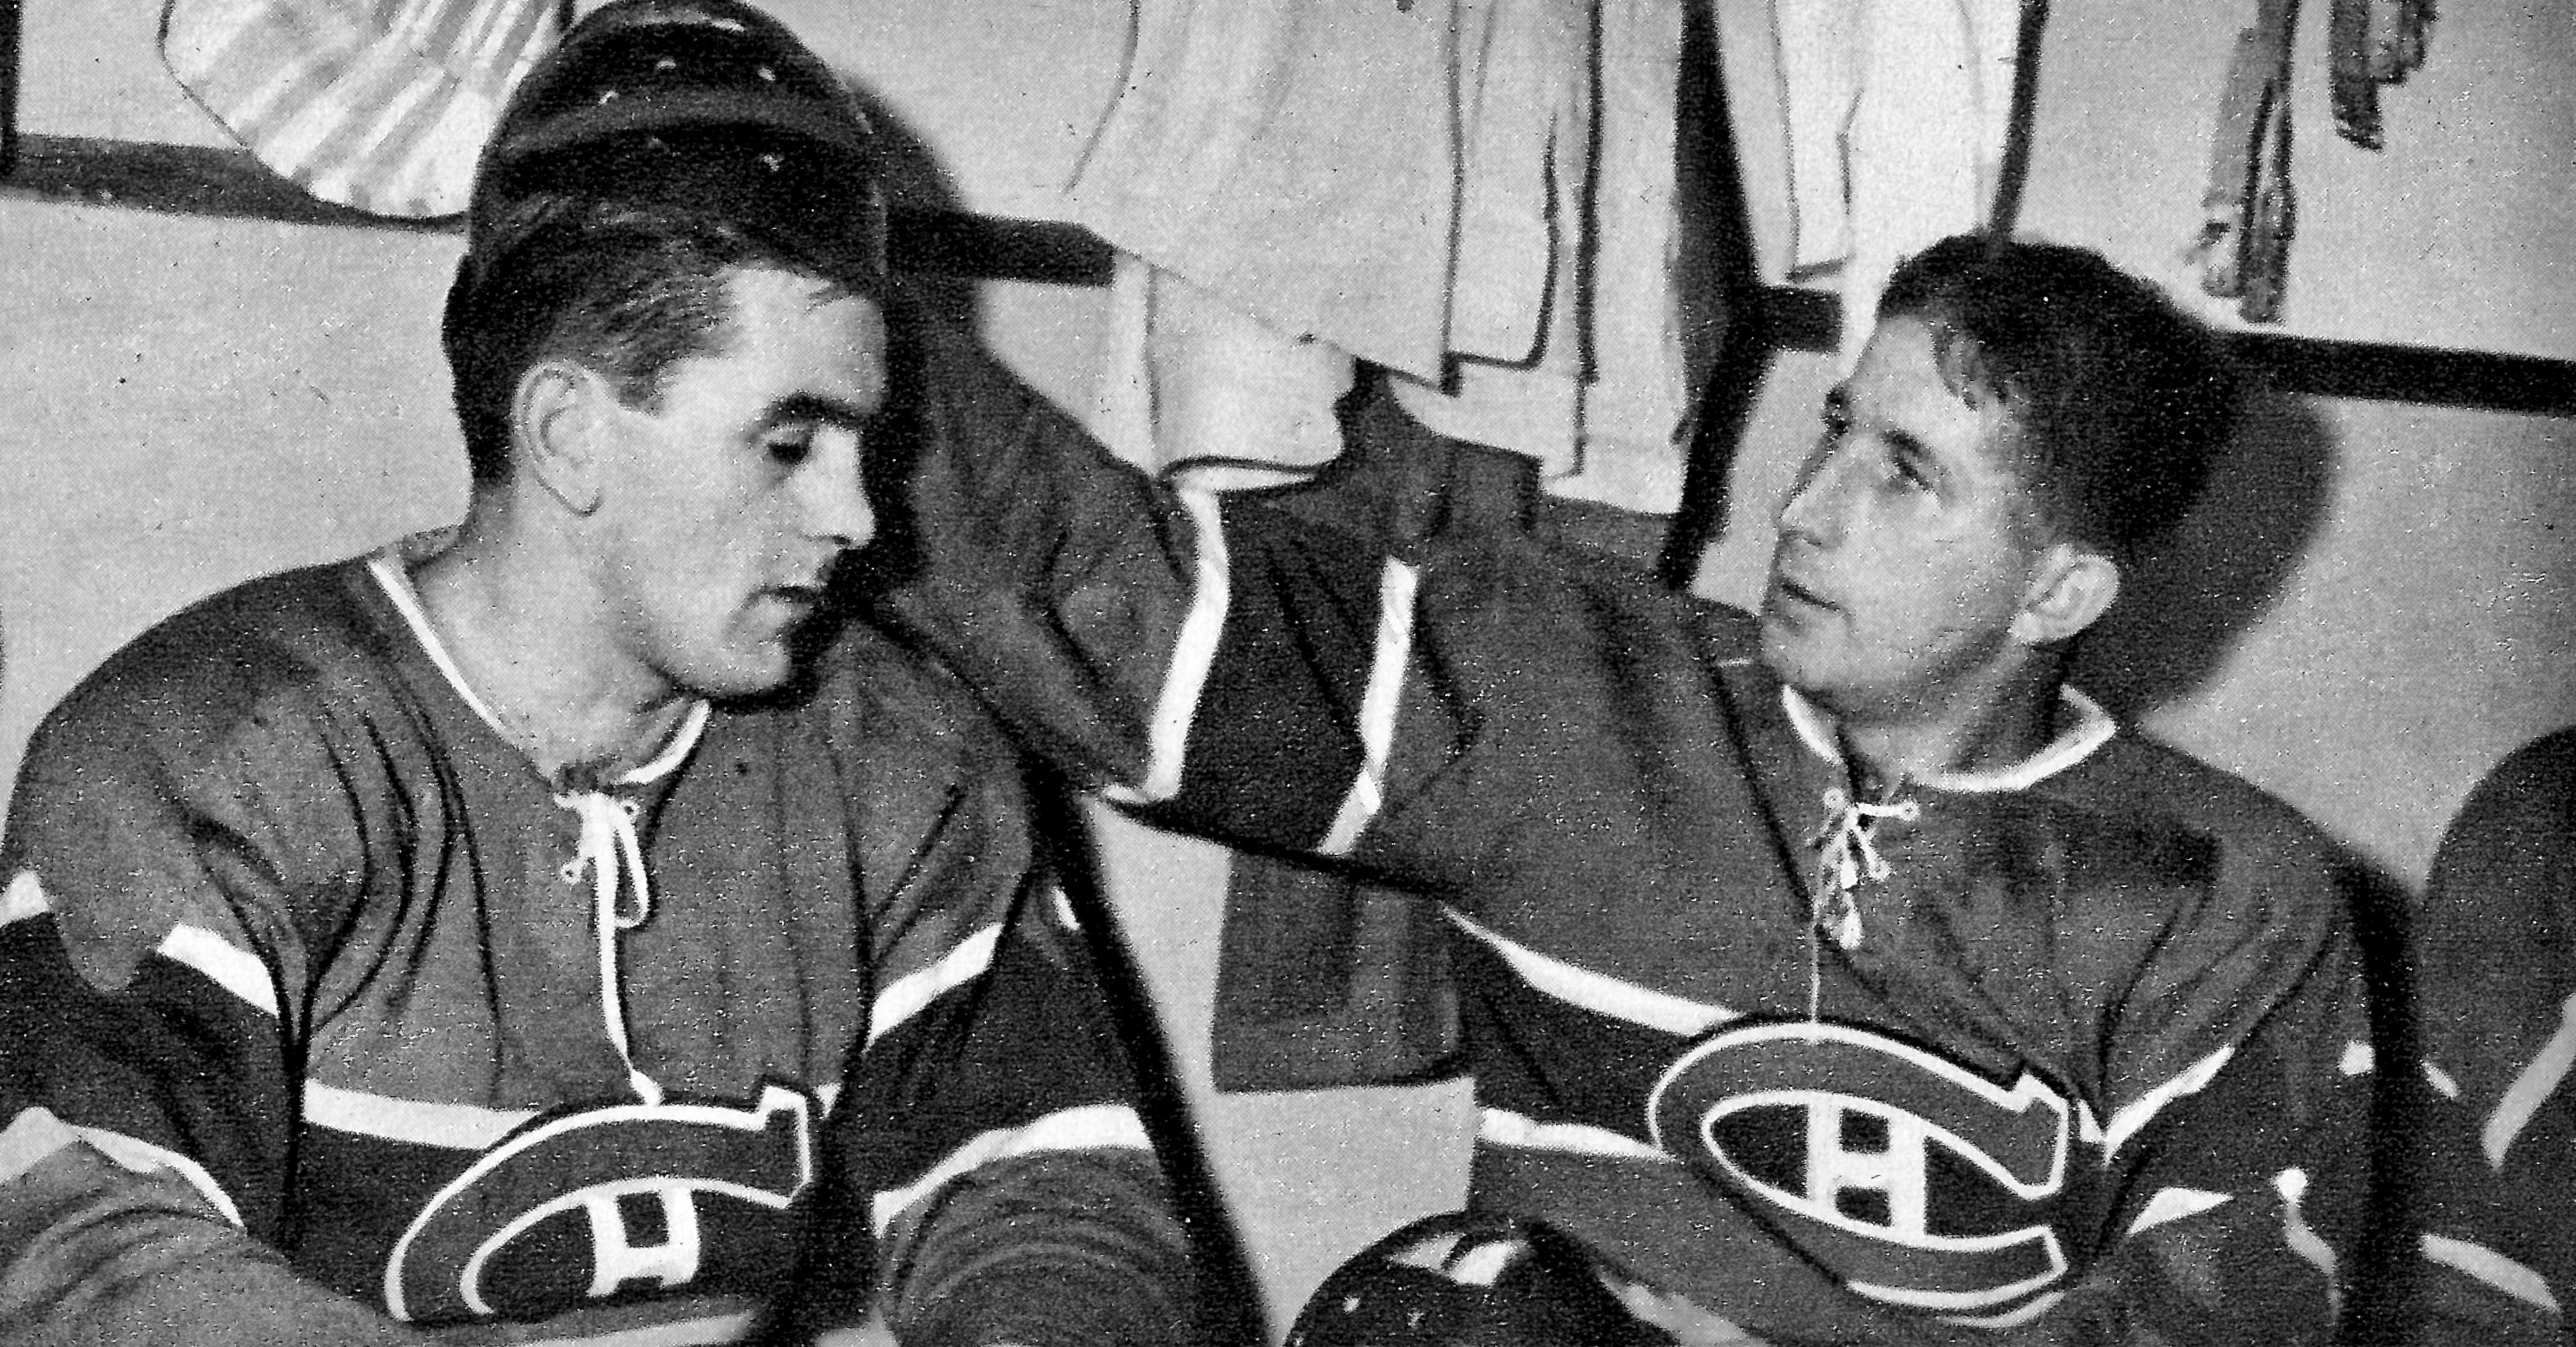 7e0873776 helmets for hockey players, 1947: richard and lach looked as if they were  sporting lacquered hair-dos